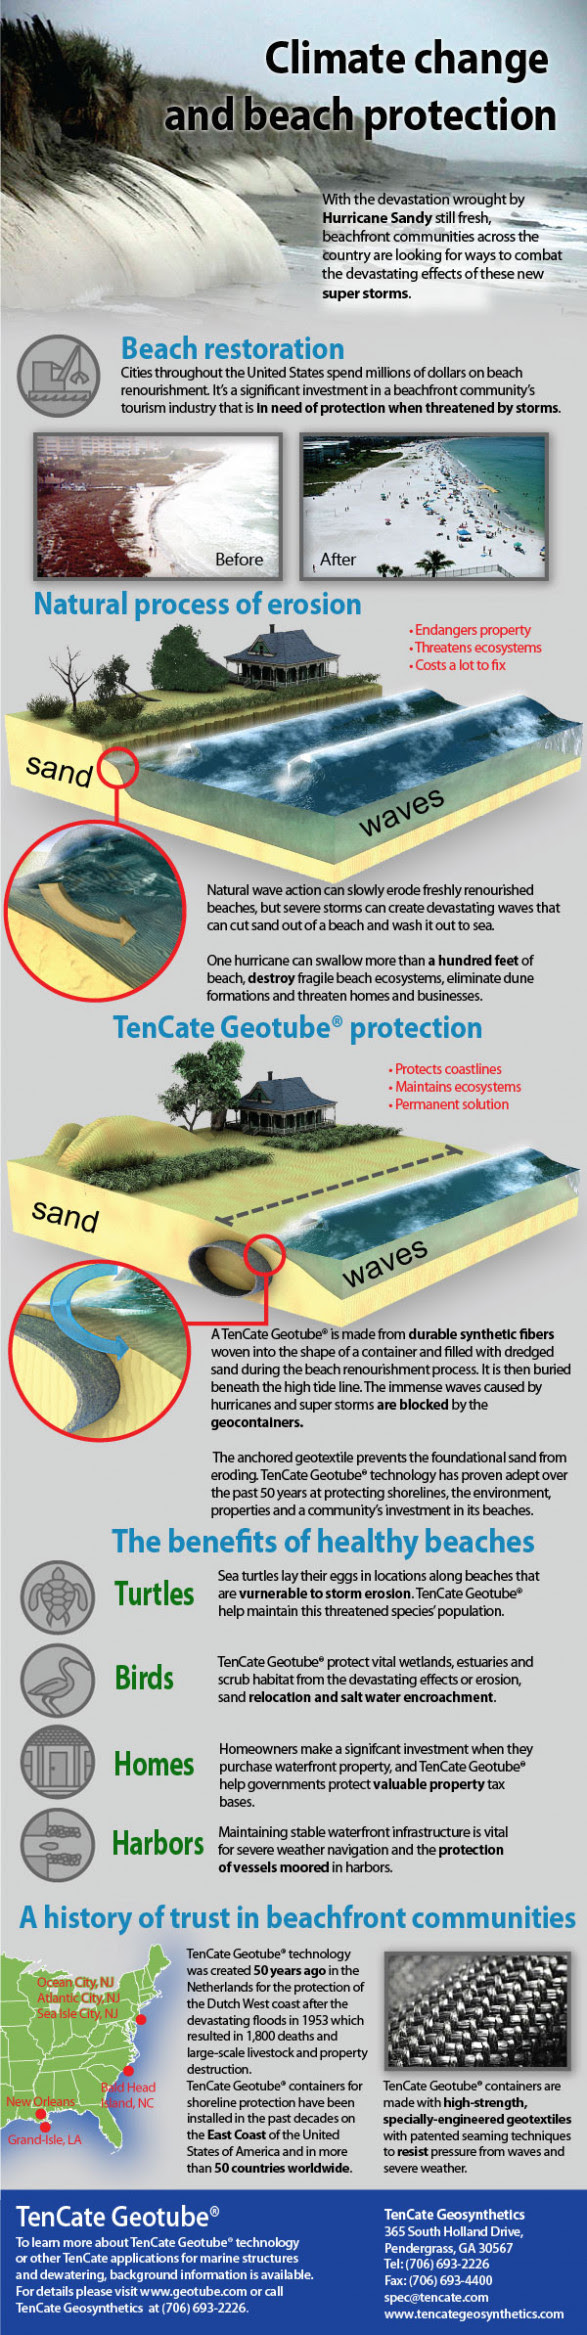 Climate Change, Beach Erosion and TenCate Geotube